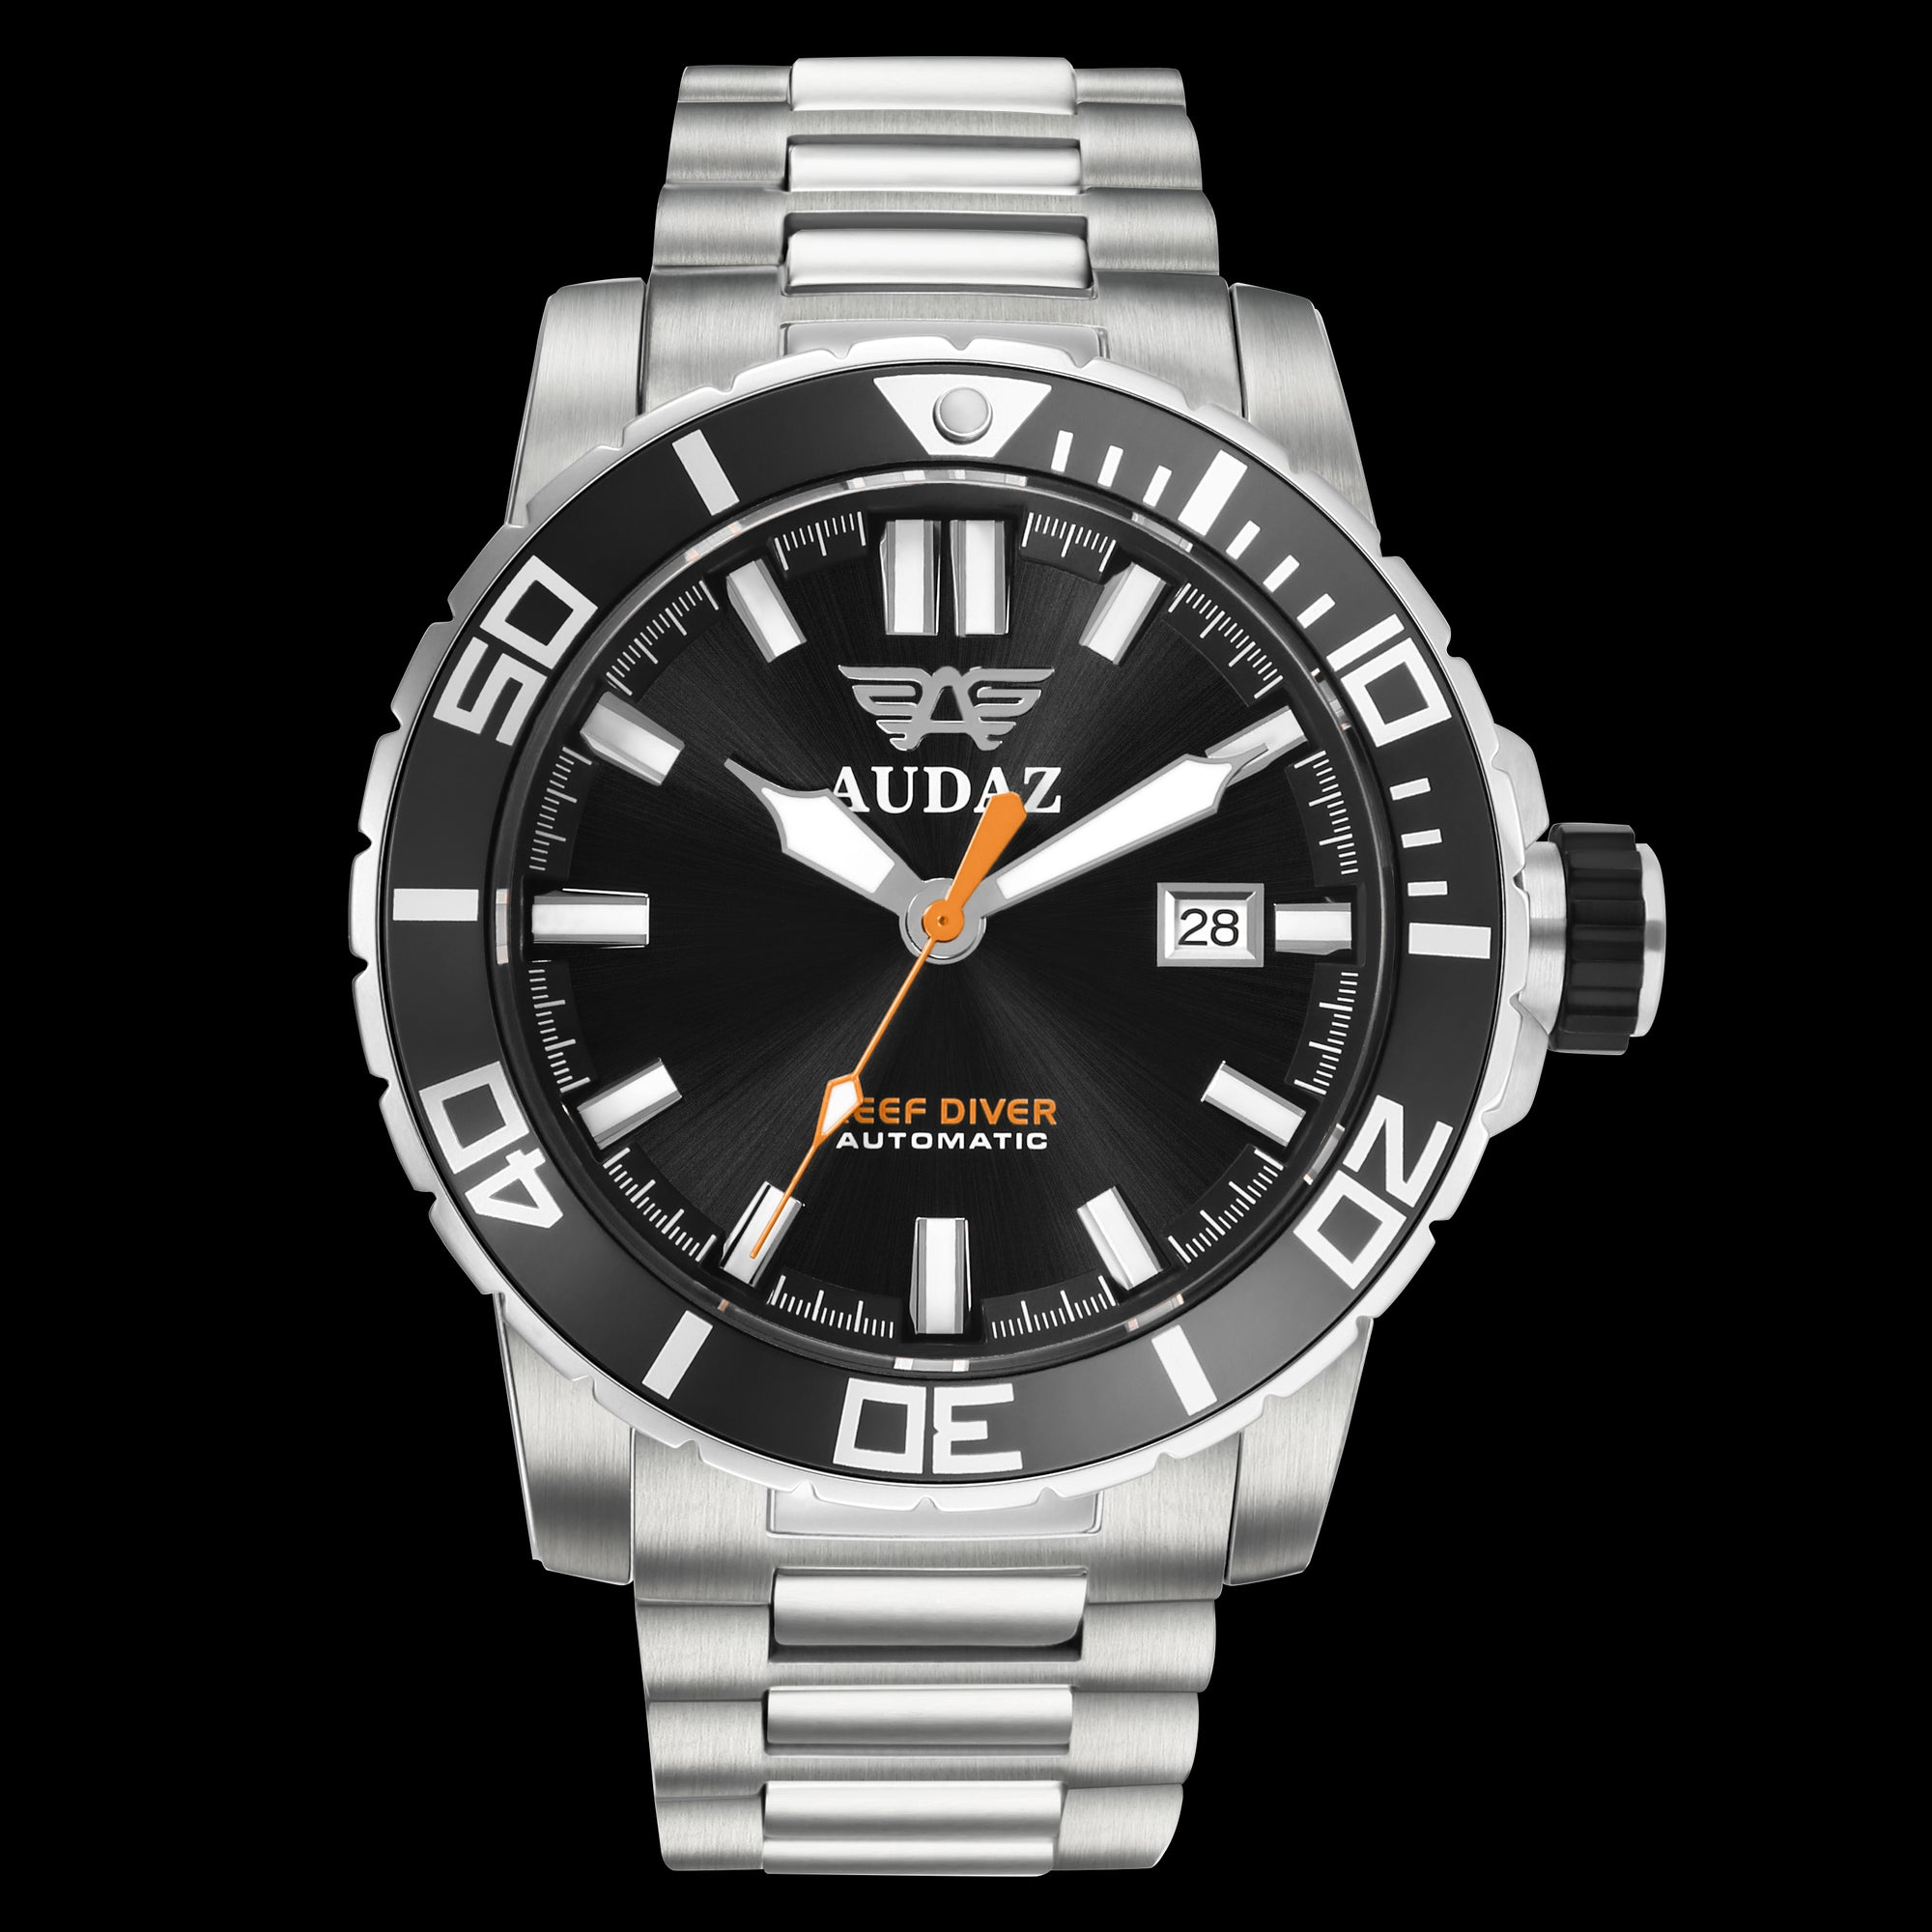 Reef Diver ( SWISS MOVT ) Watches ADZ-2045-01